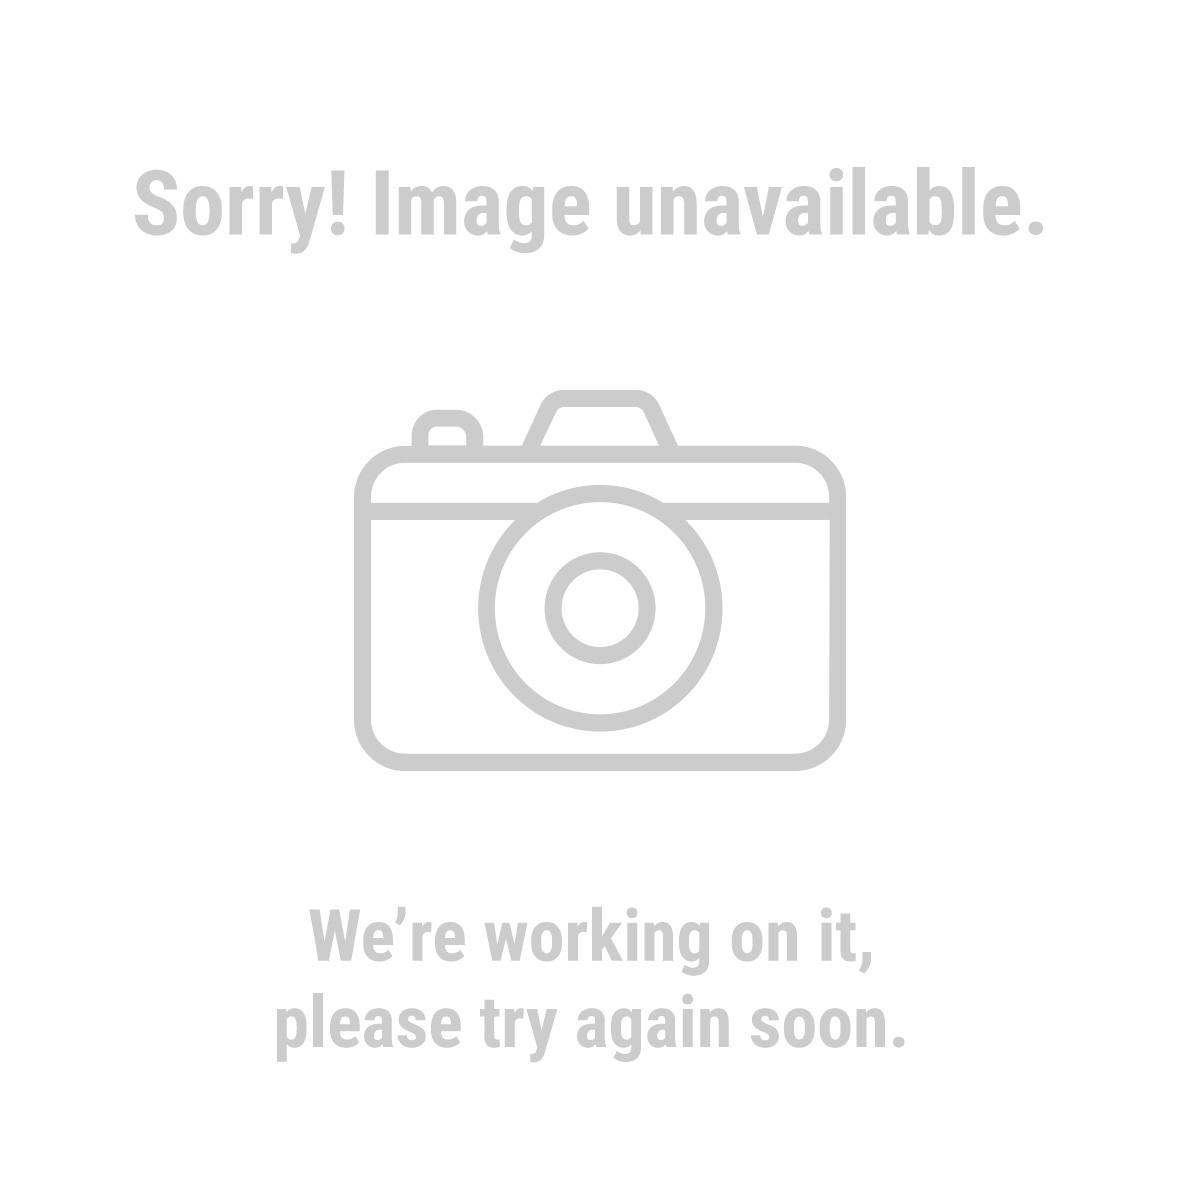 Haul-Master 96658 Four-Way Trailer Wiring Connection Kit